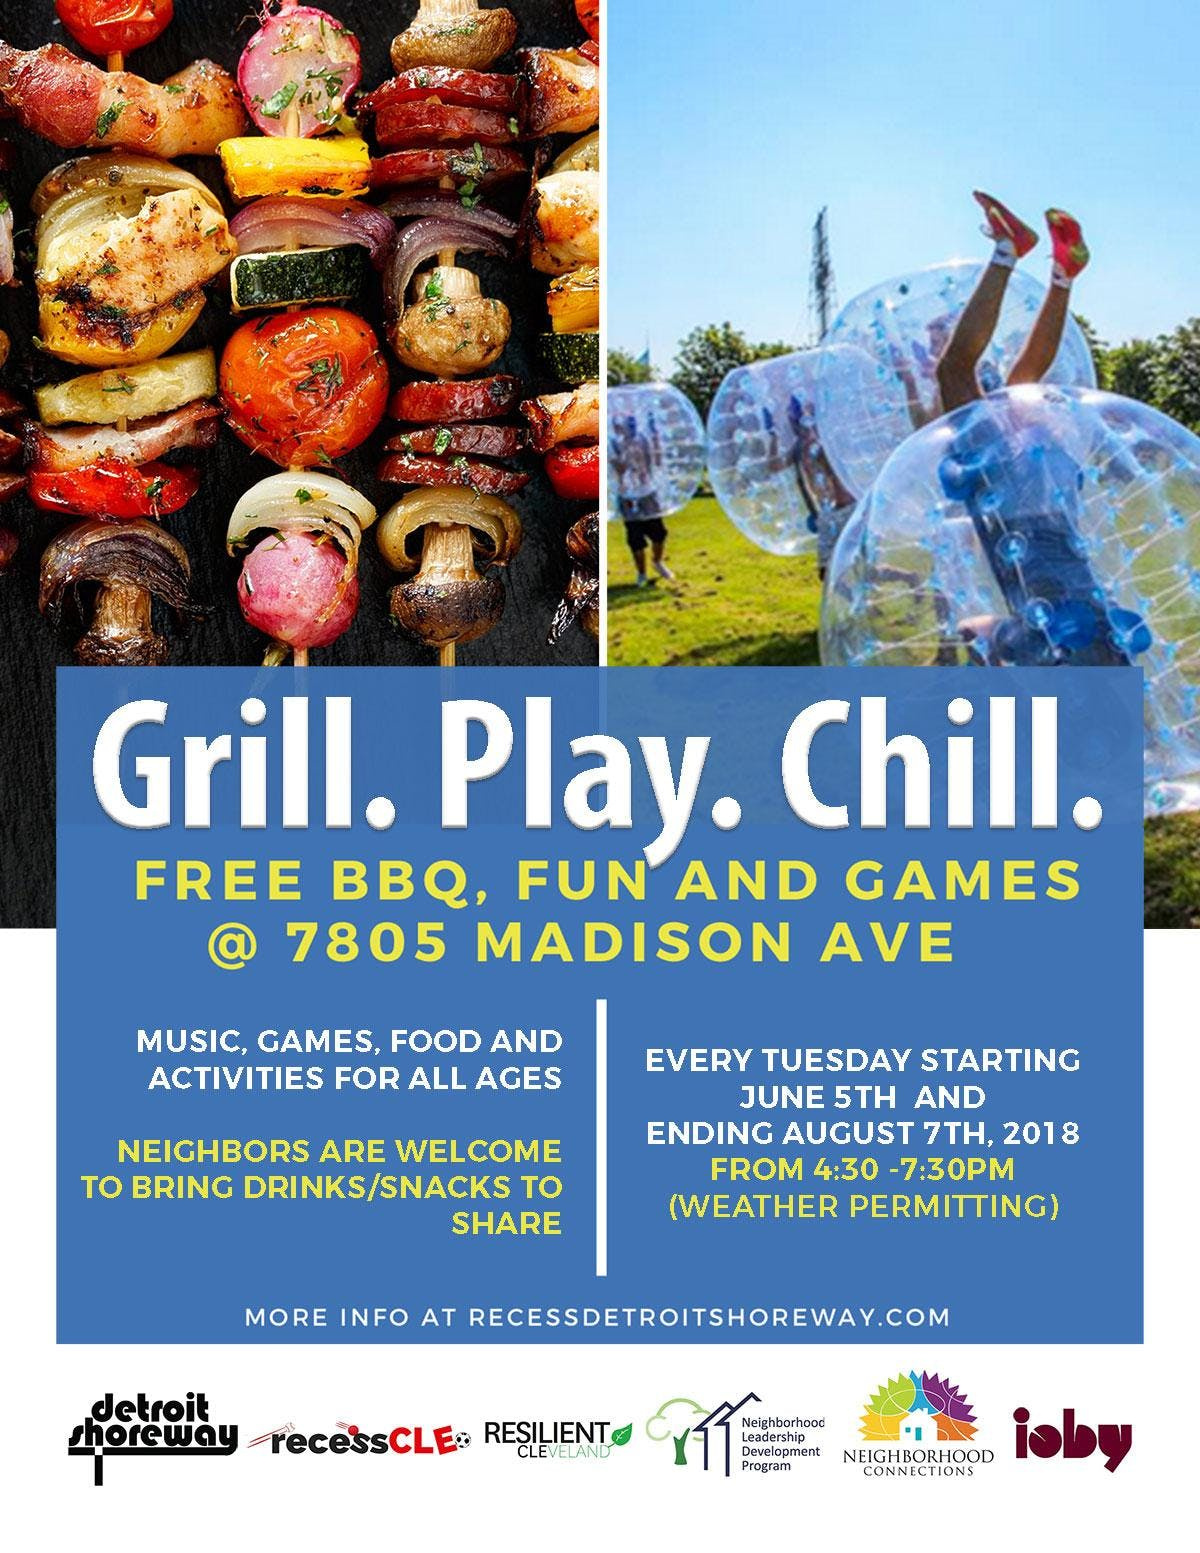 Grill. Play. Chill. fFree BBQ Fun and Games